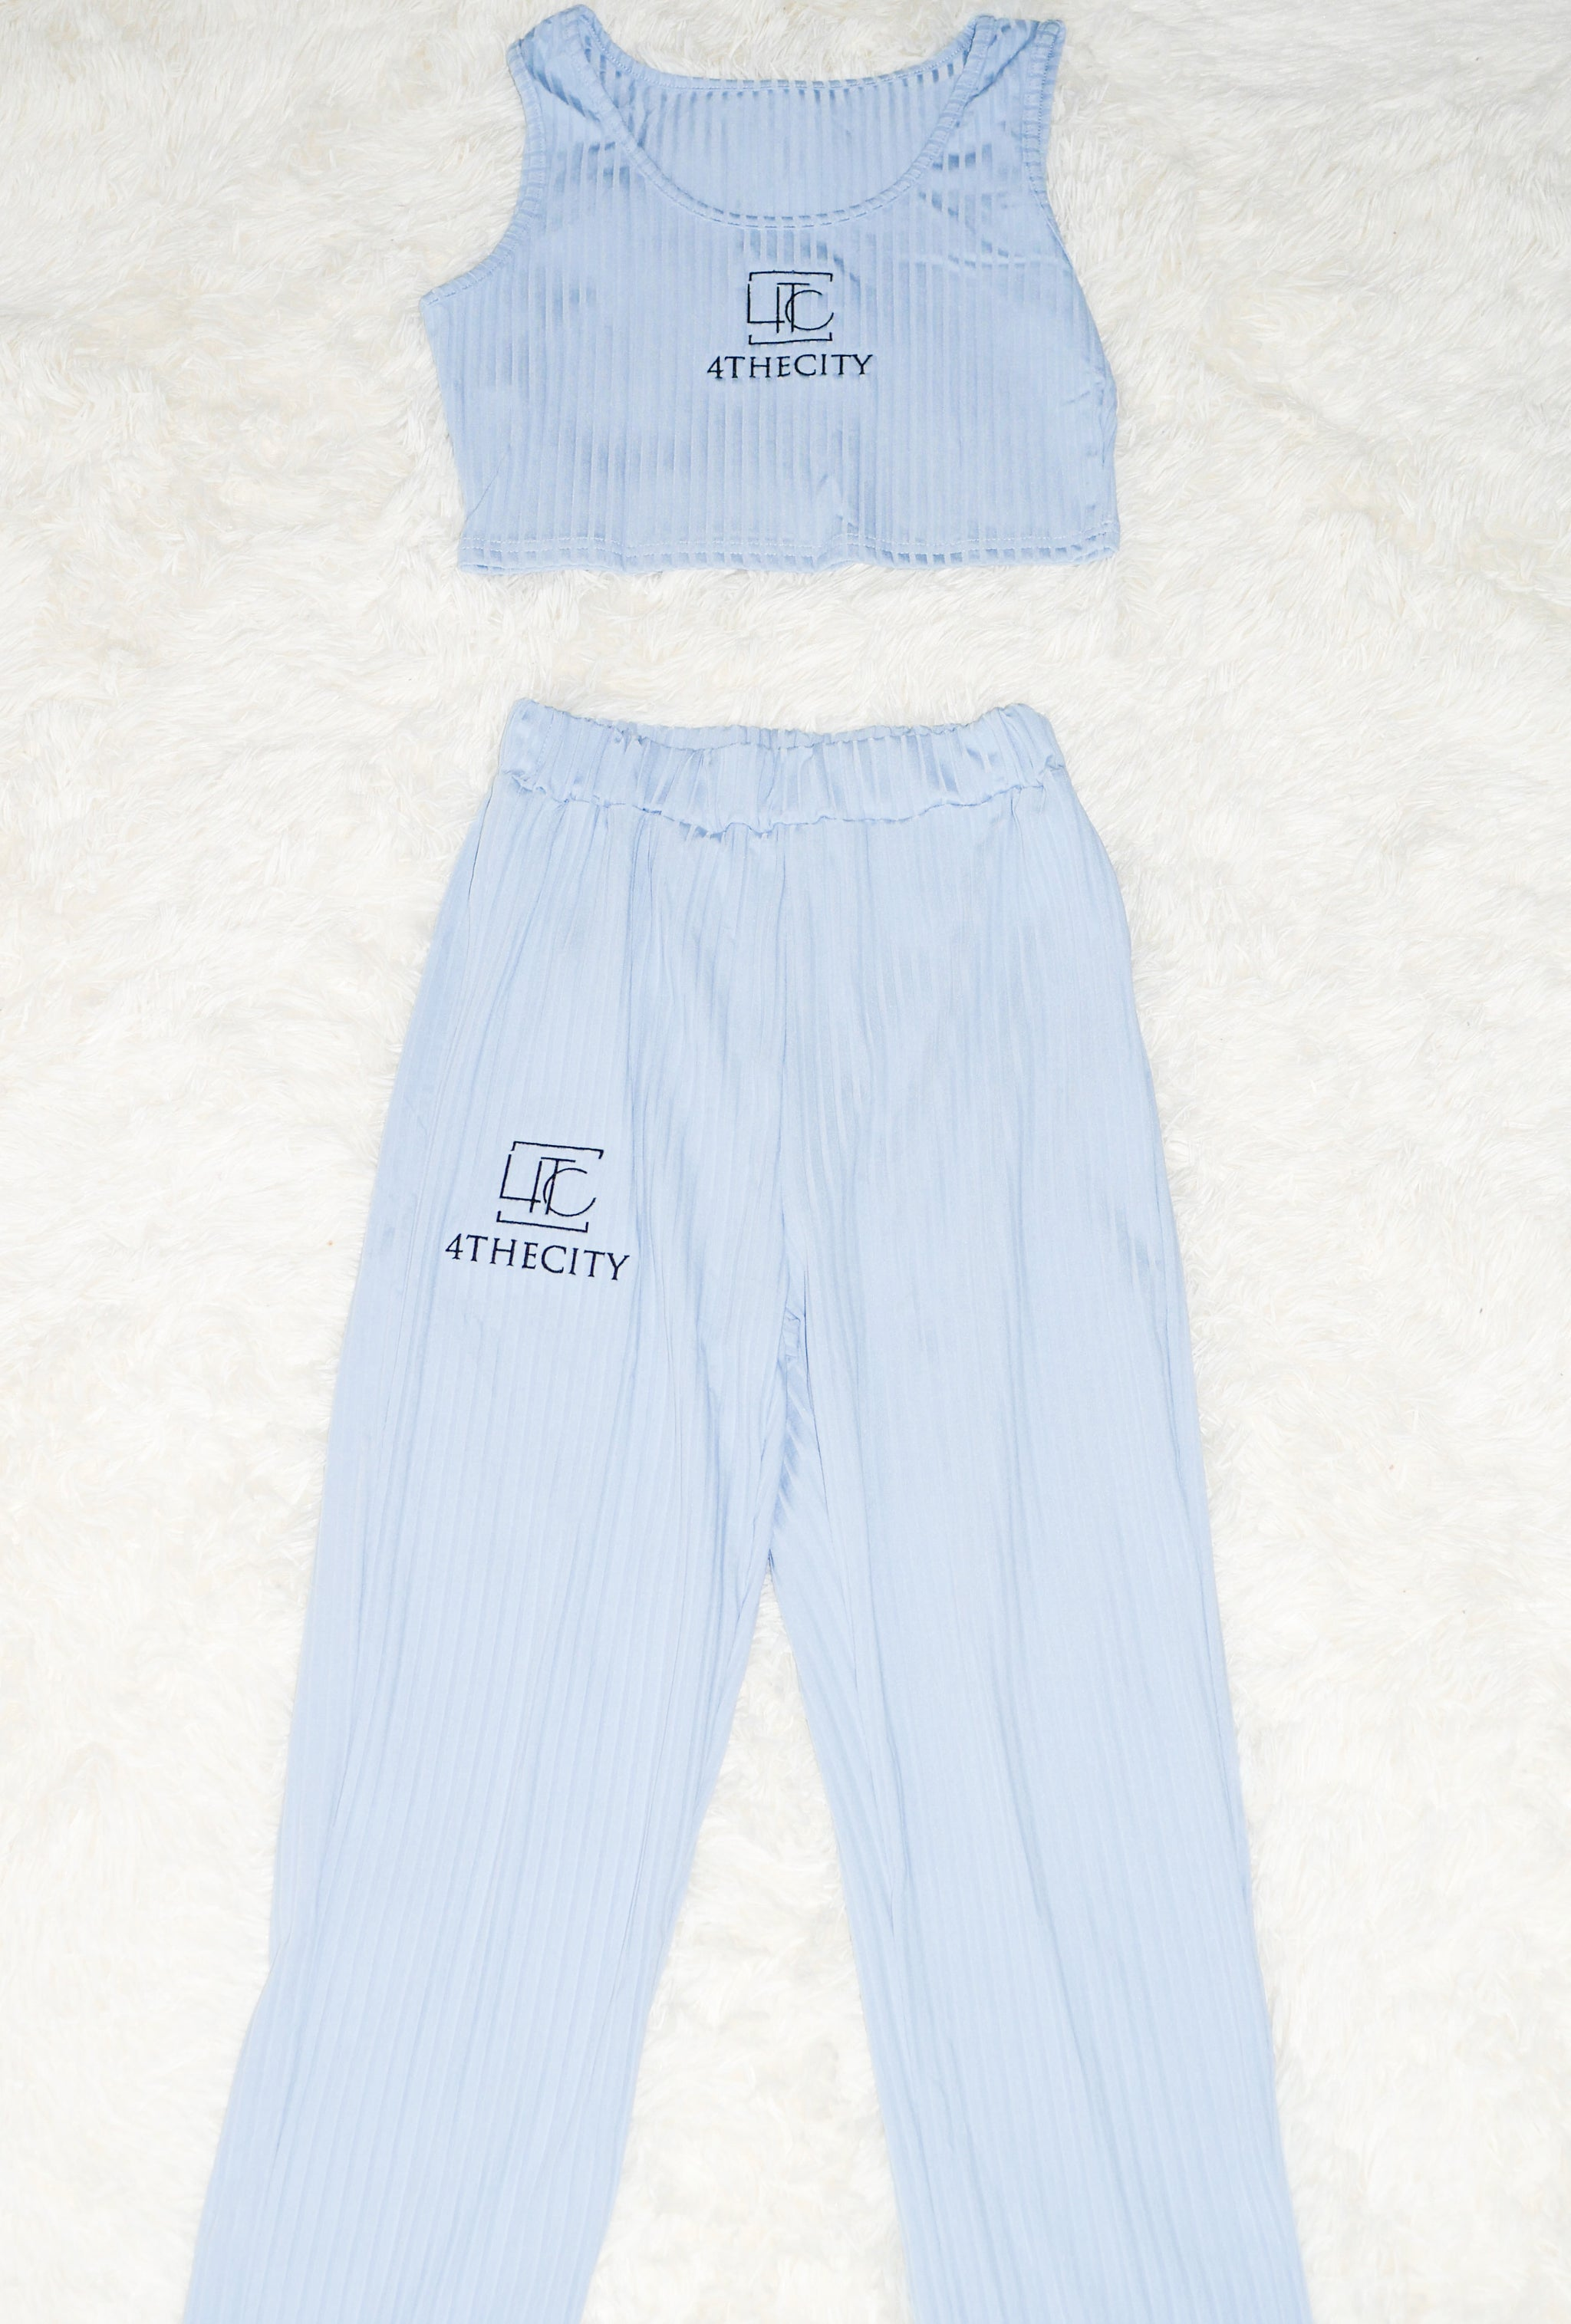 4TC Light Blue Top & Bottom Sleepwear